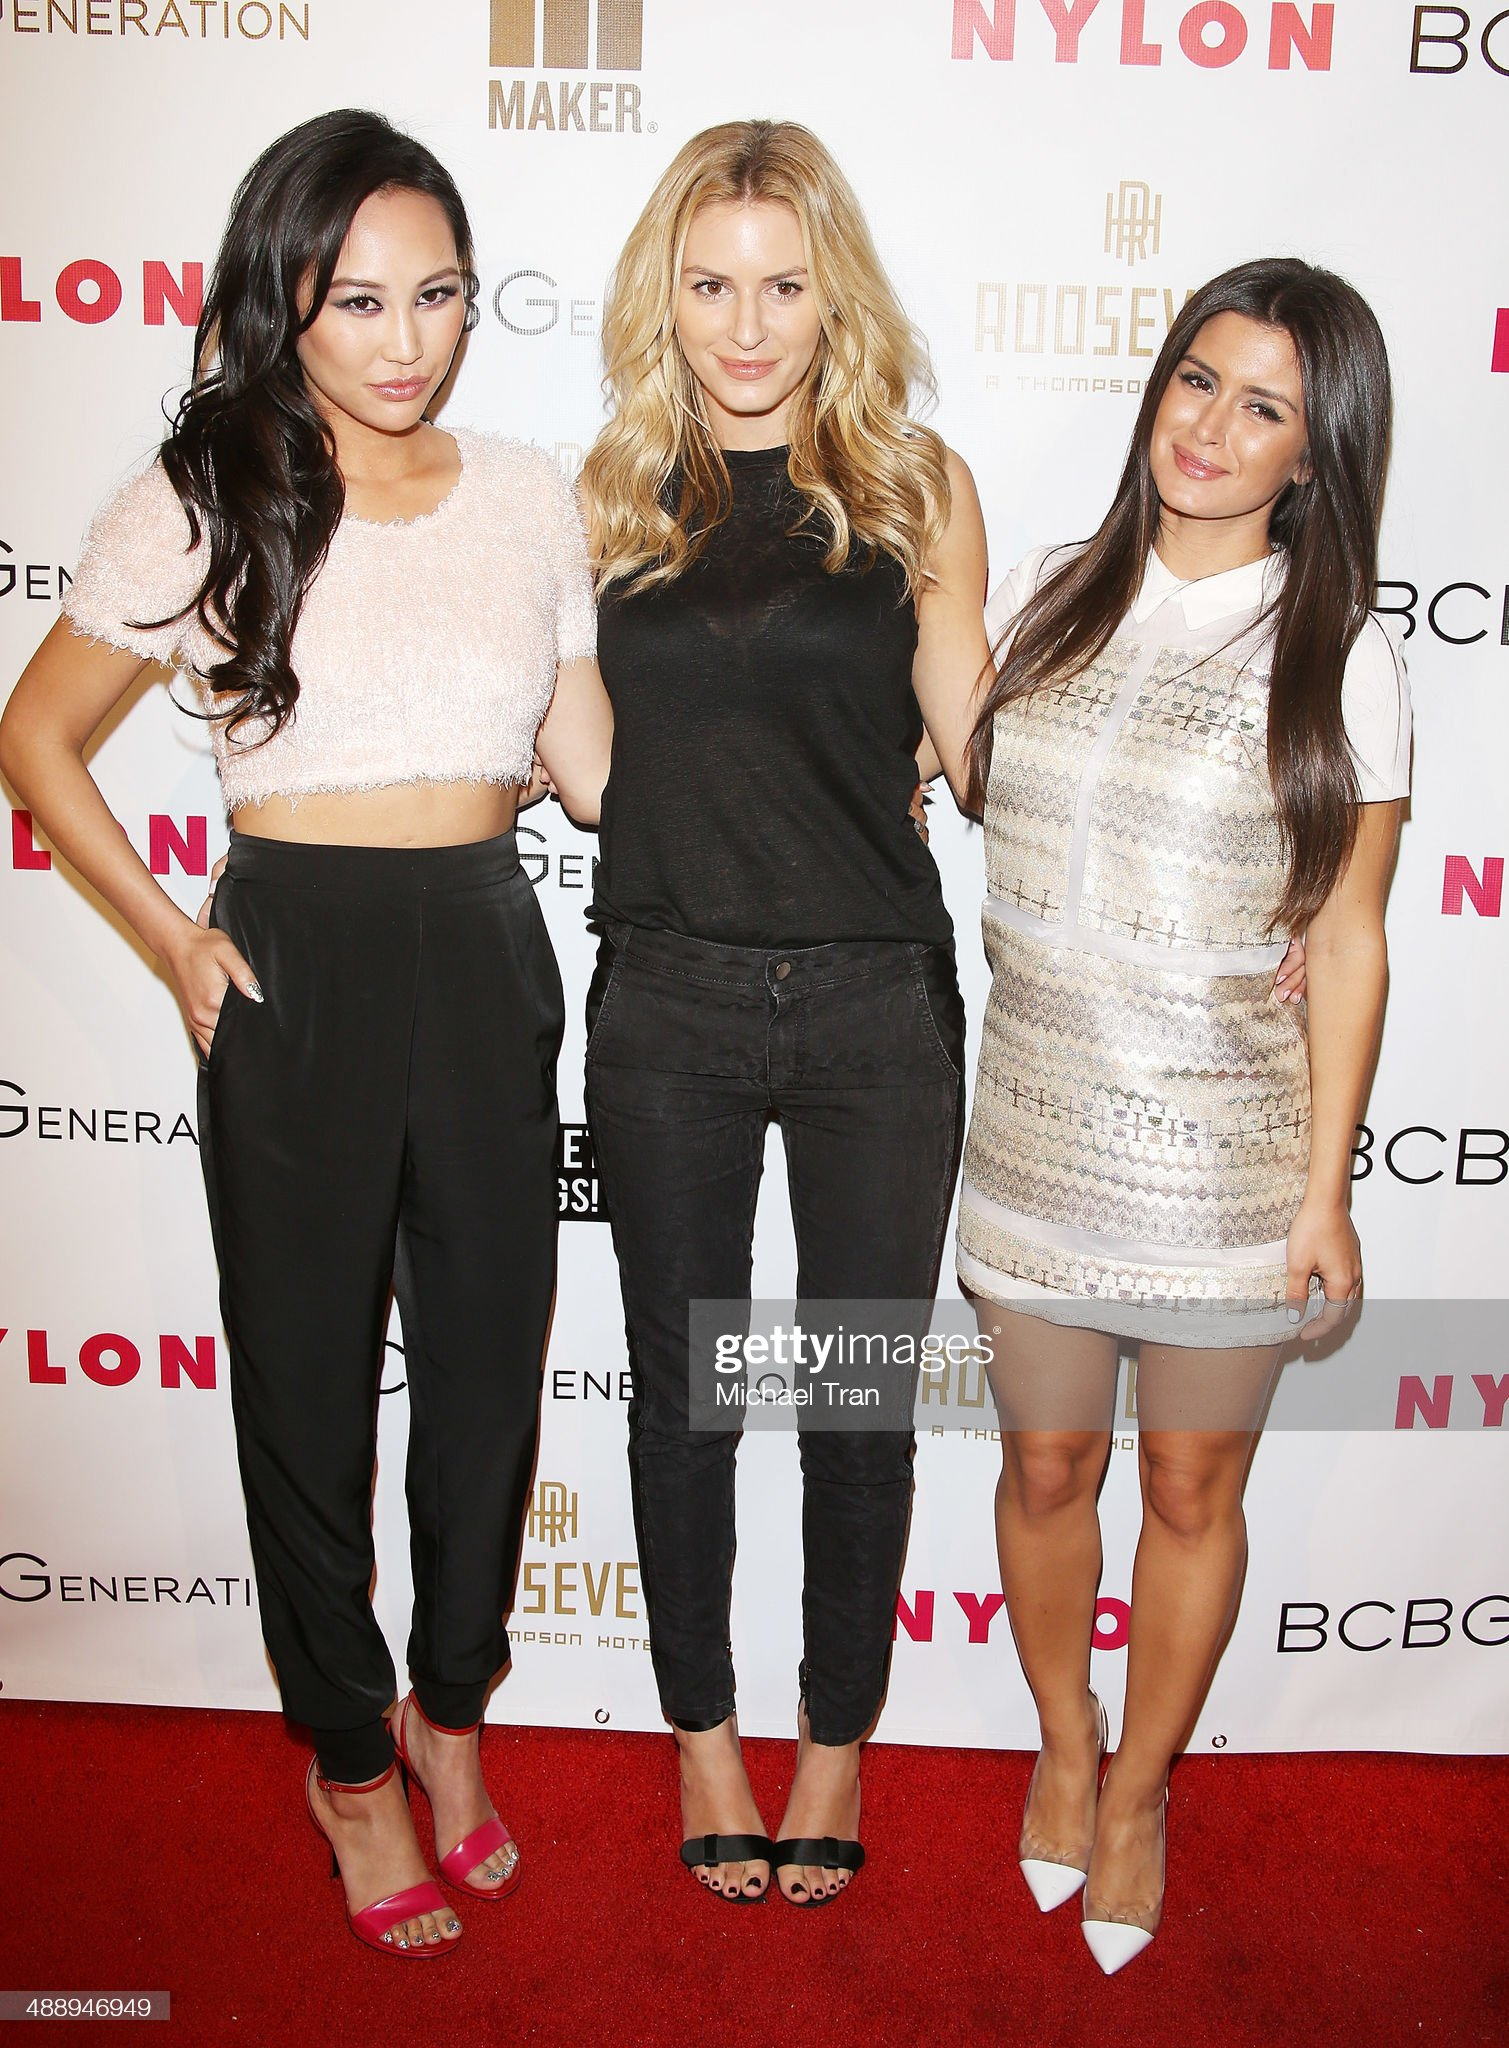 ¿Cuánto mide Roxy Sowlaty? - Real height Dorothy-wang-morgan-stewart-and-roxy-sowlaty-arrive-at-the-nylon-may-picture-id488946949?s=2048x2048